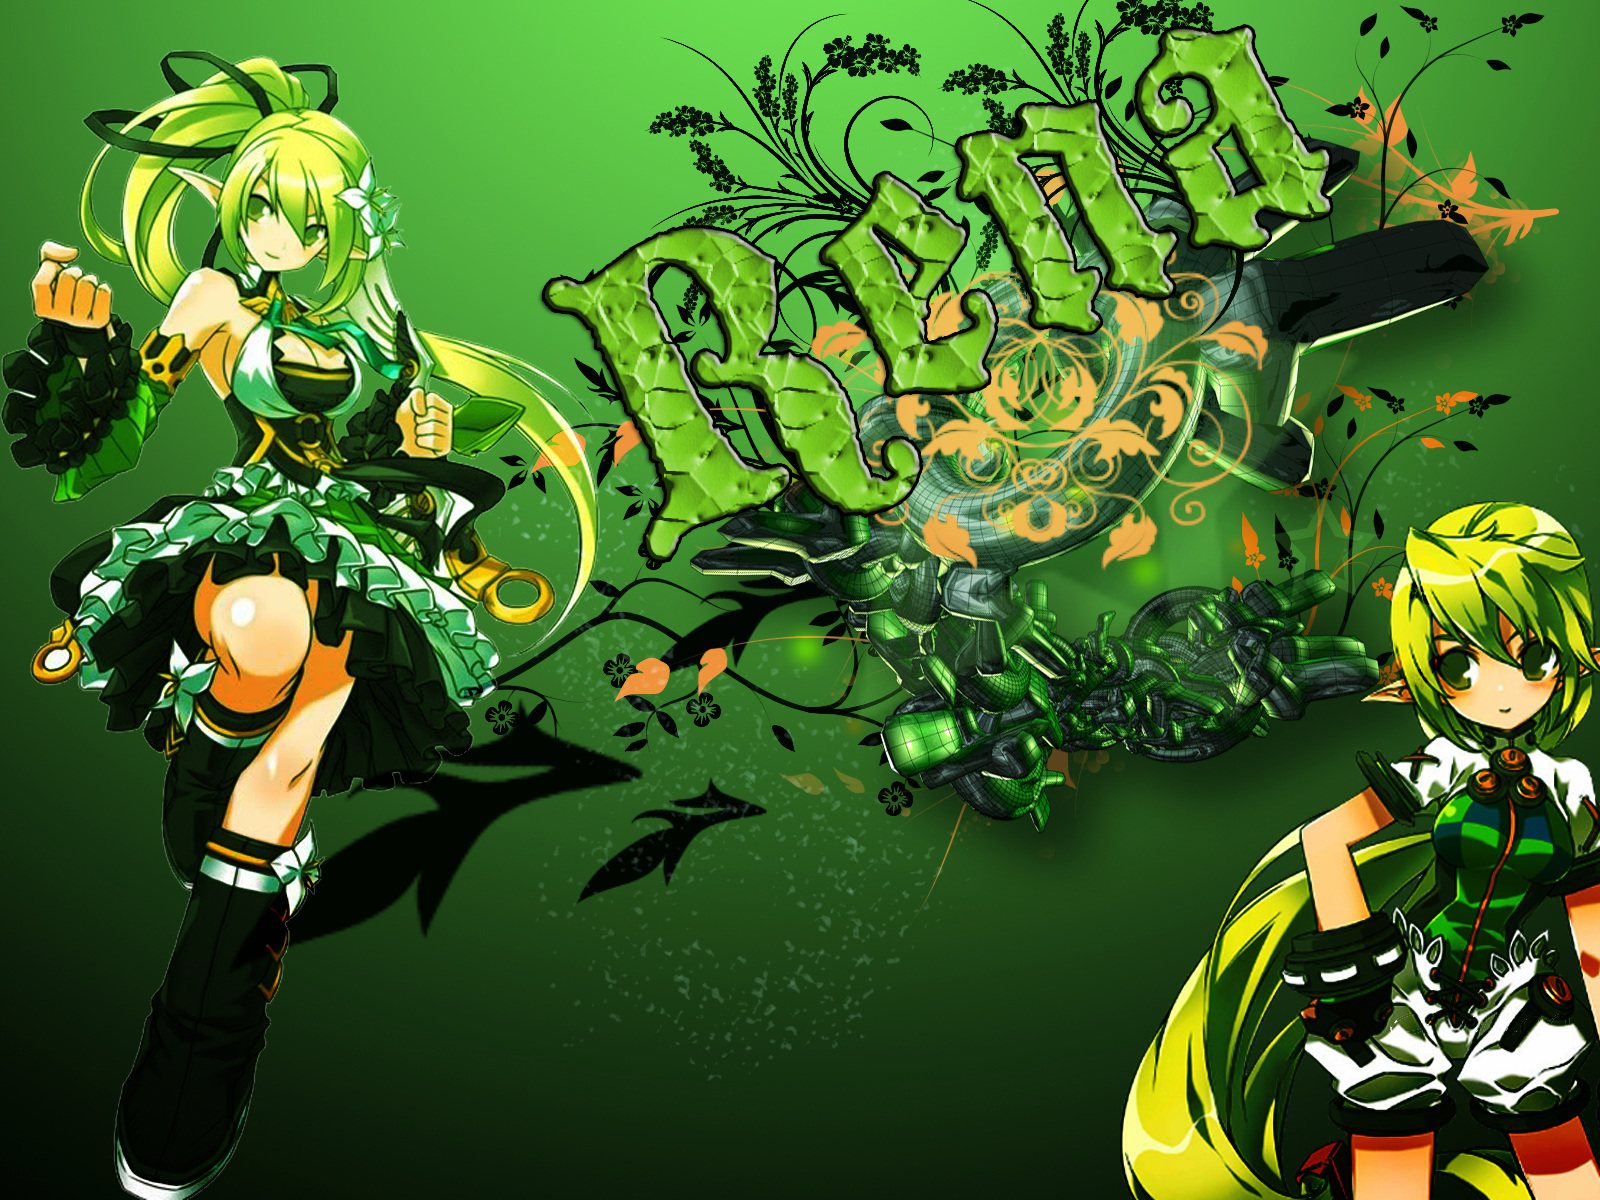 Google themes elsword - Elsword Images Rena Wallpaper 01 Hd Wallpaper And Background Photos